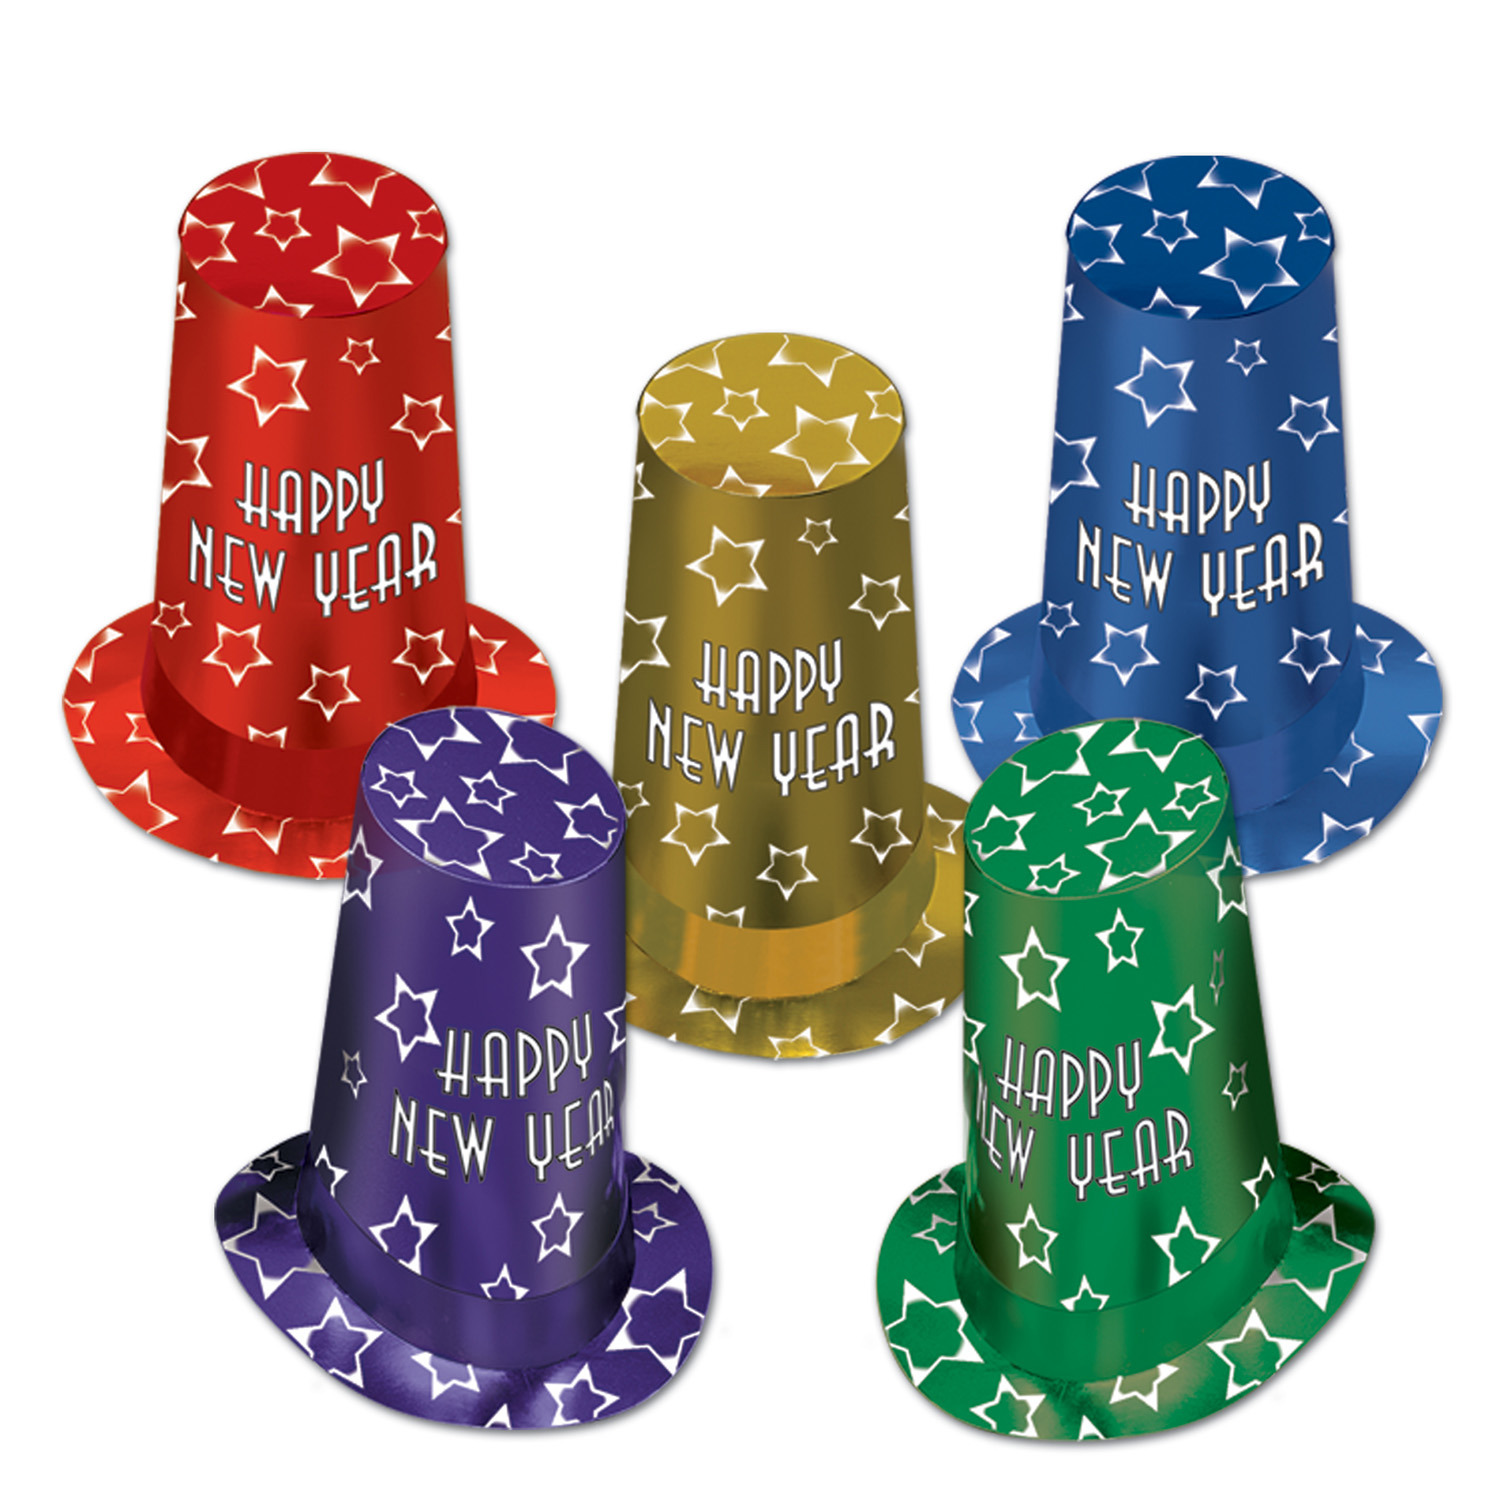 Assorted packaged of super high hats in different vibrant colors and accented with printed white stars.